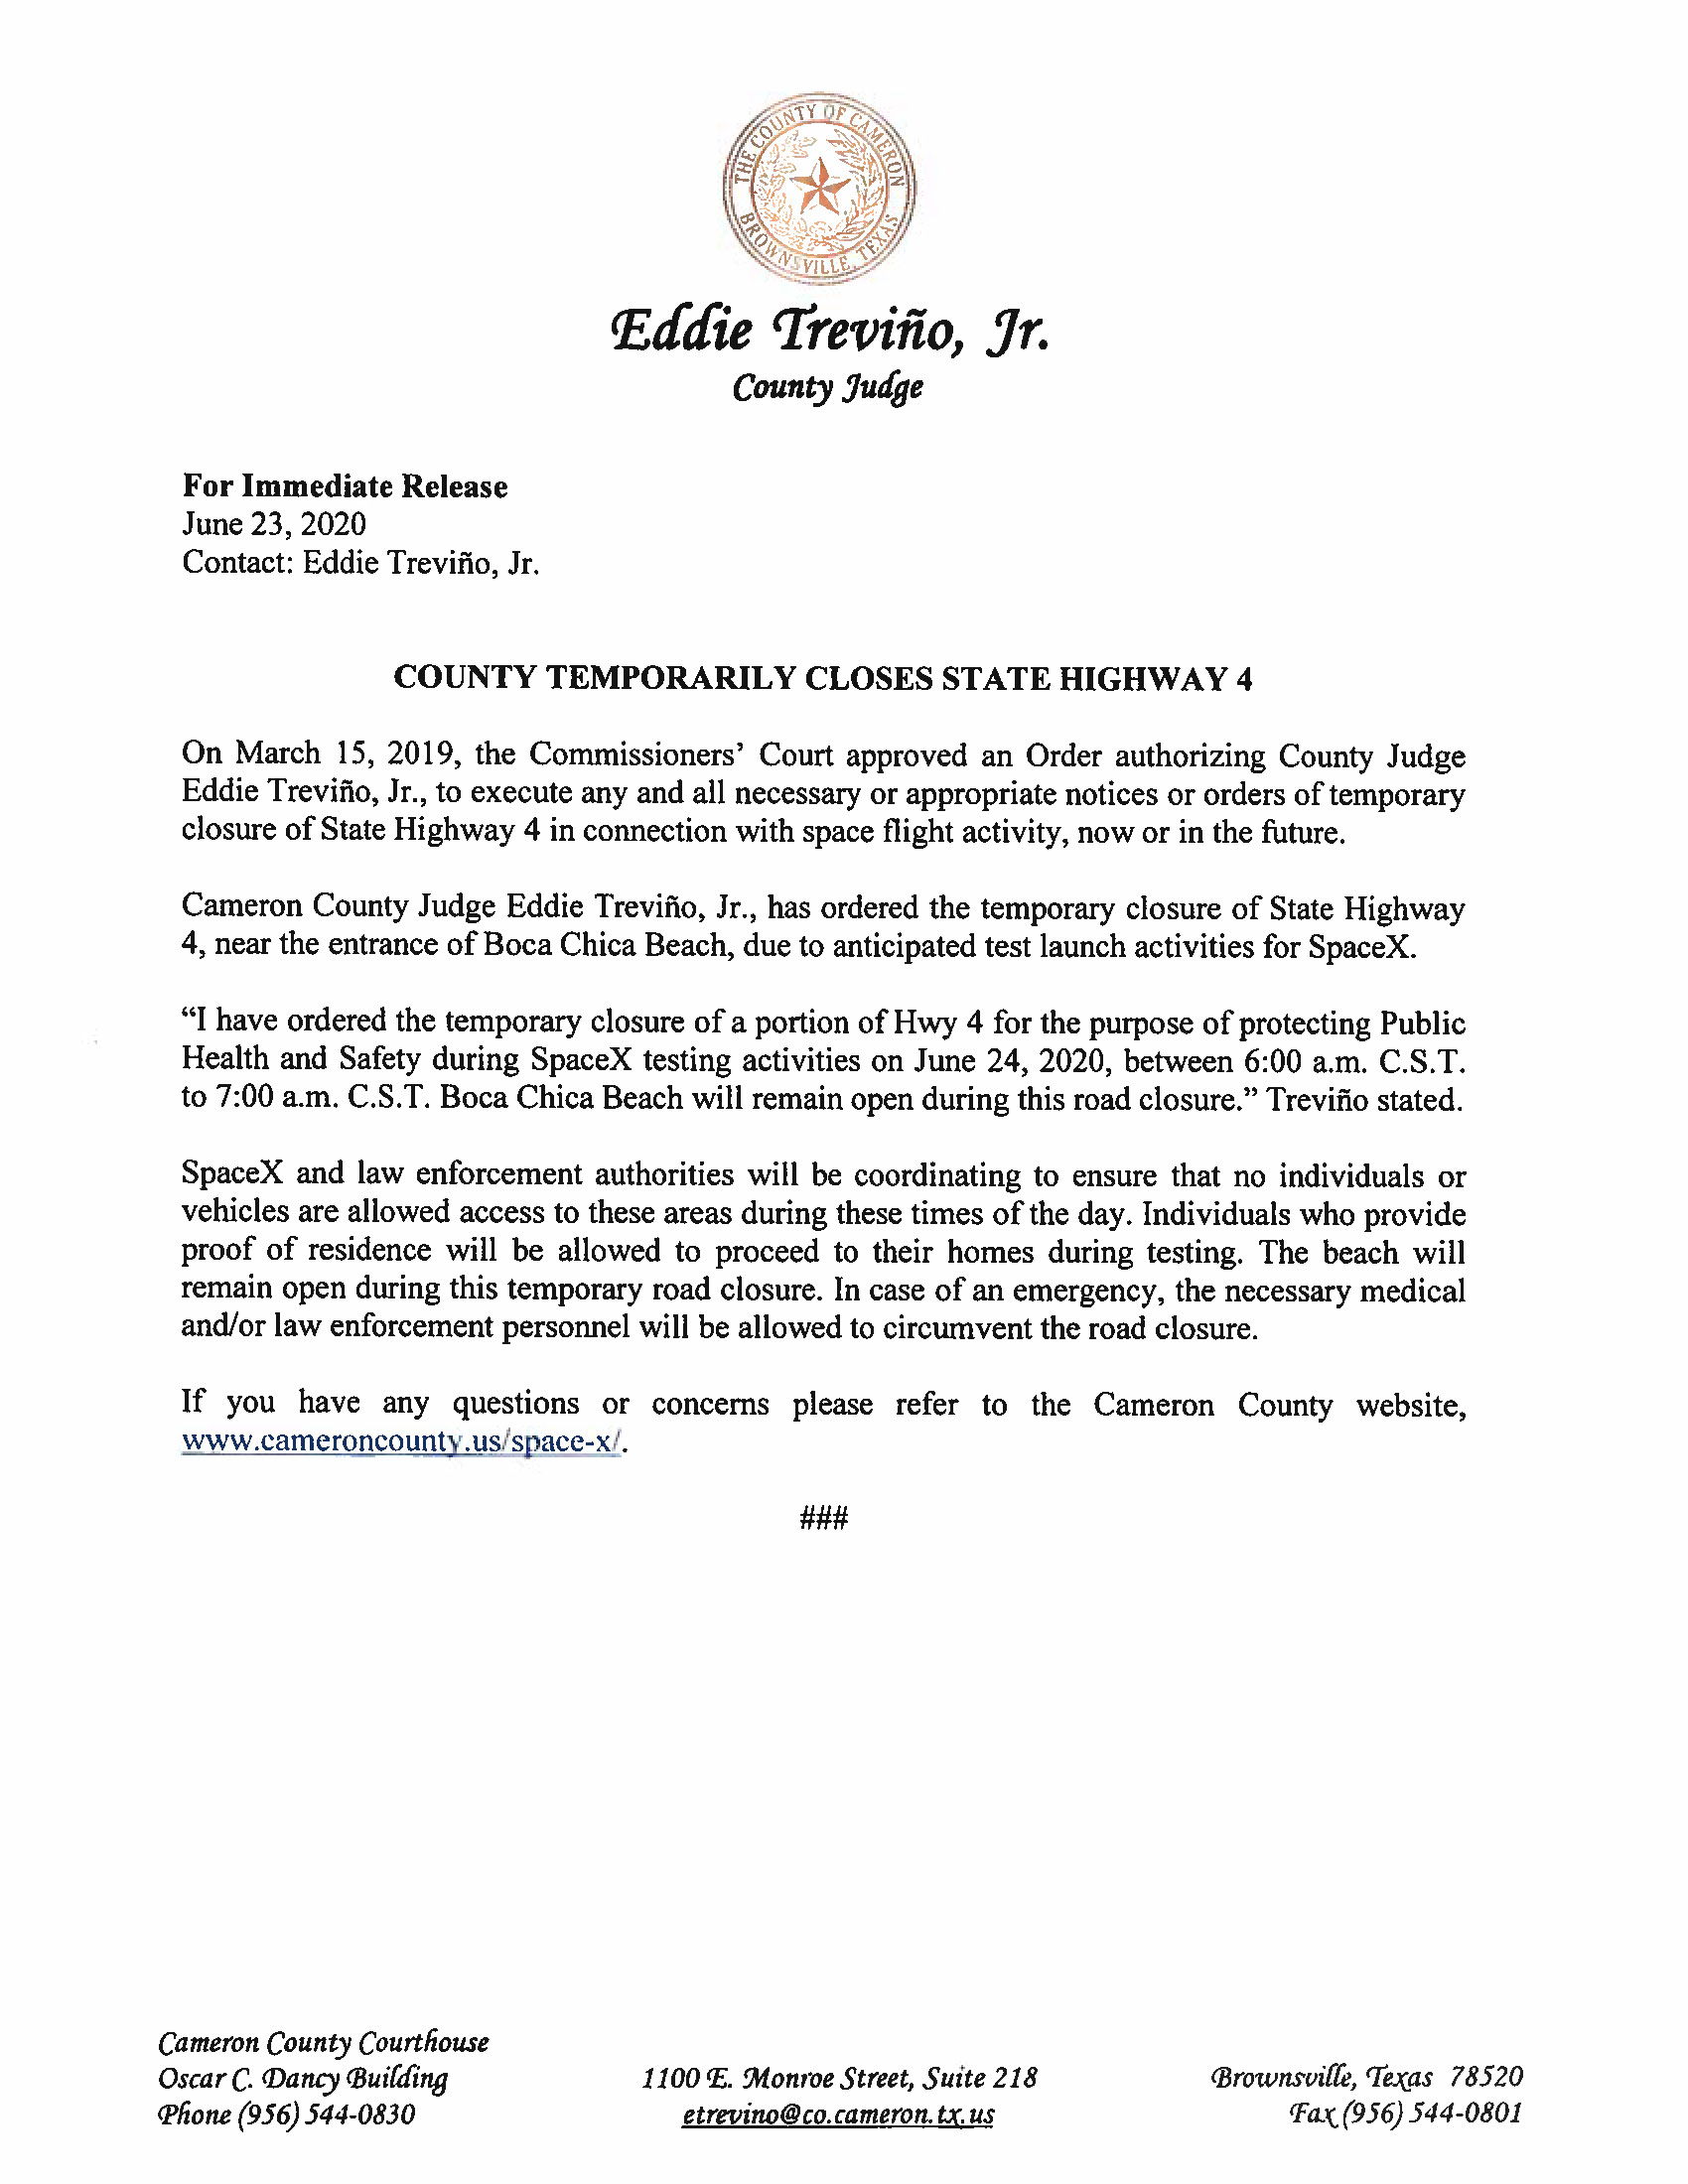 Press Release In English And Spanish.06.24.20 Page 1 1